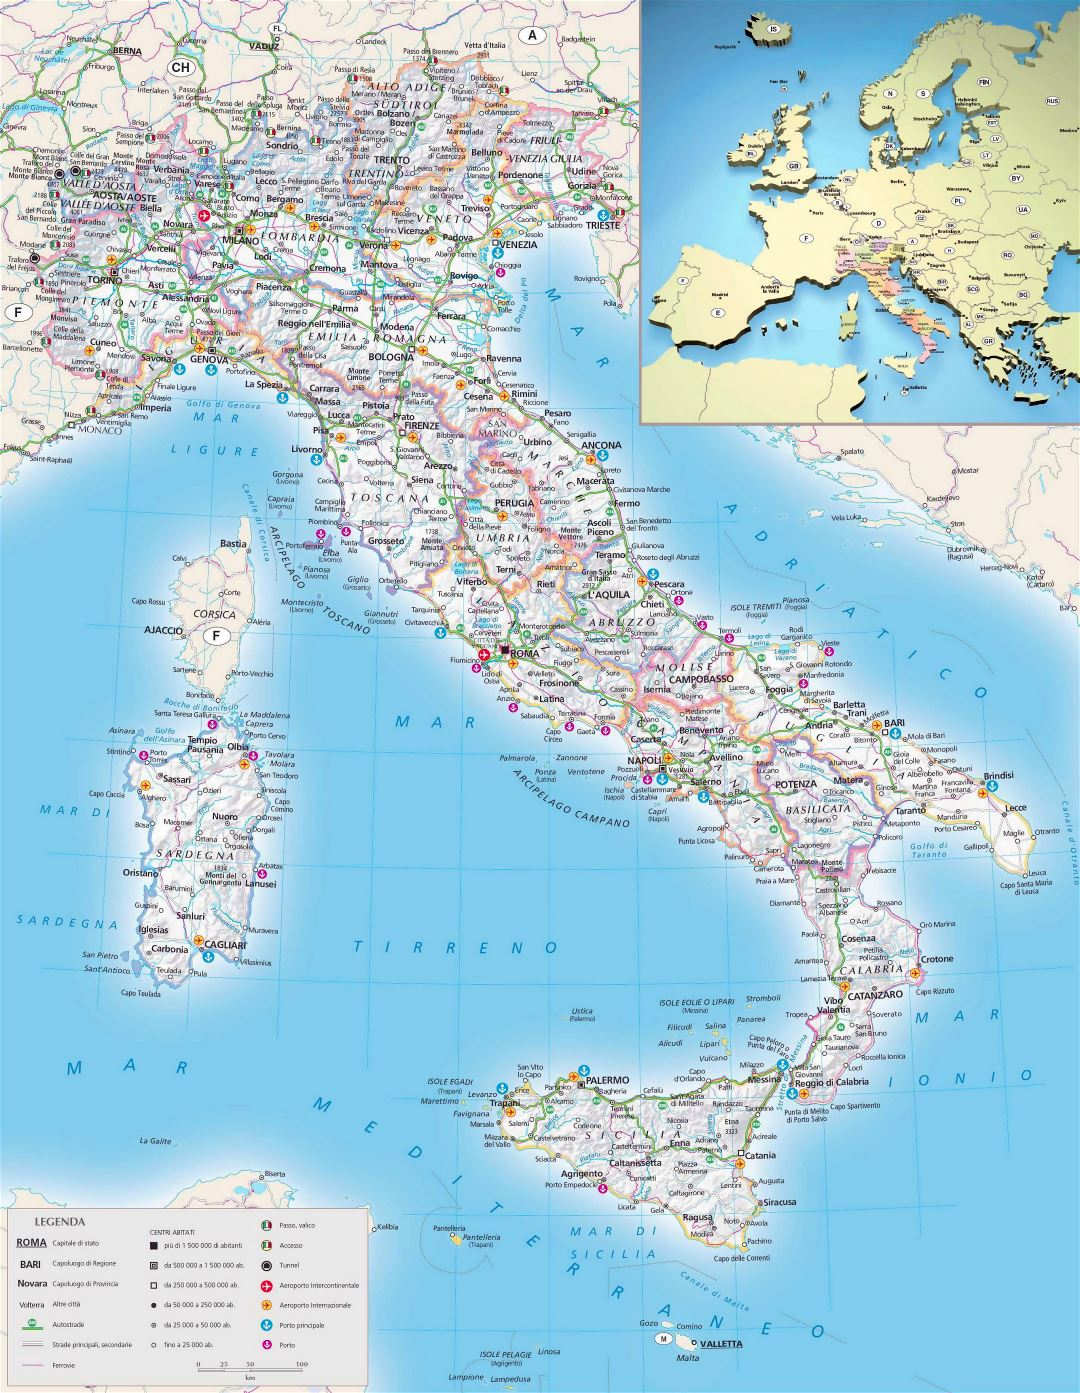 Large scale political and administrative map of Italy with relief, roads, cities, seaports, airports and other marks